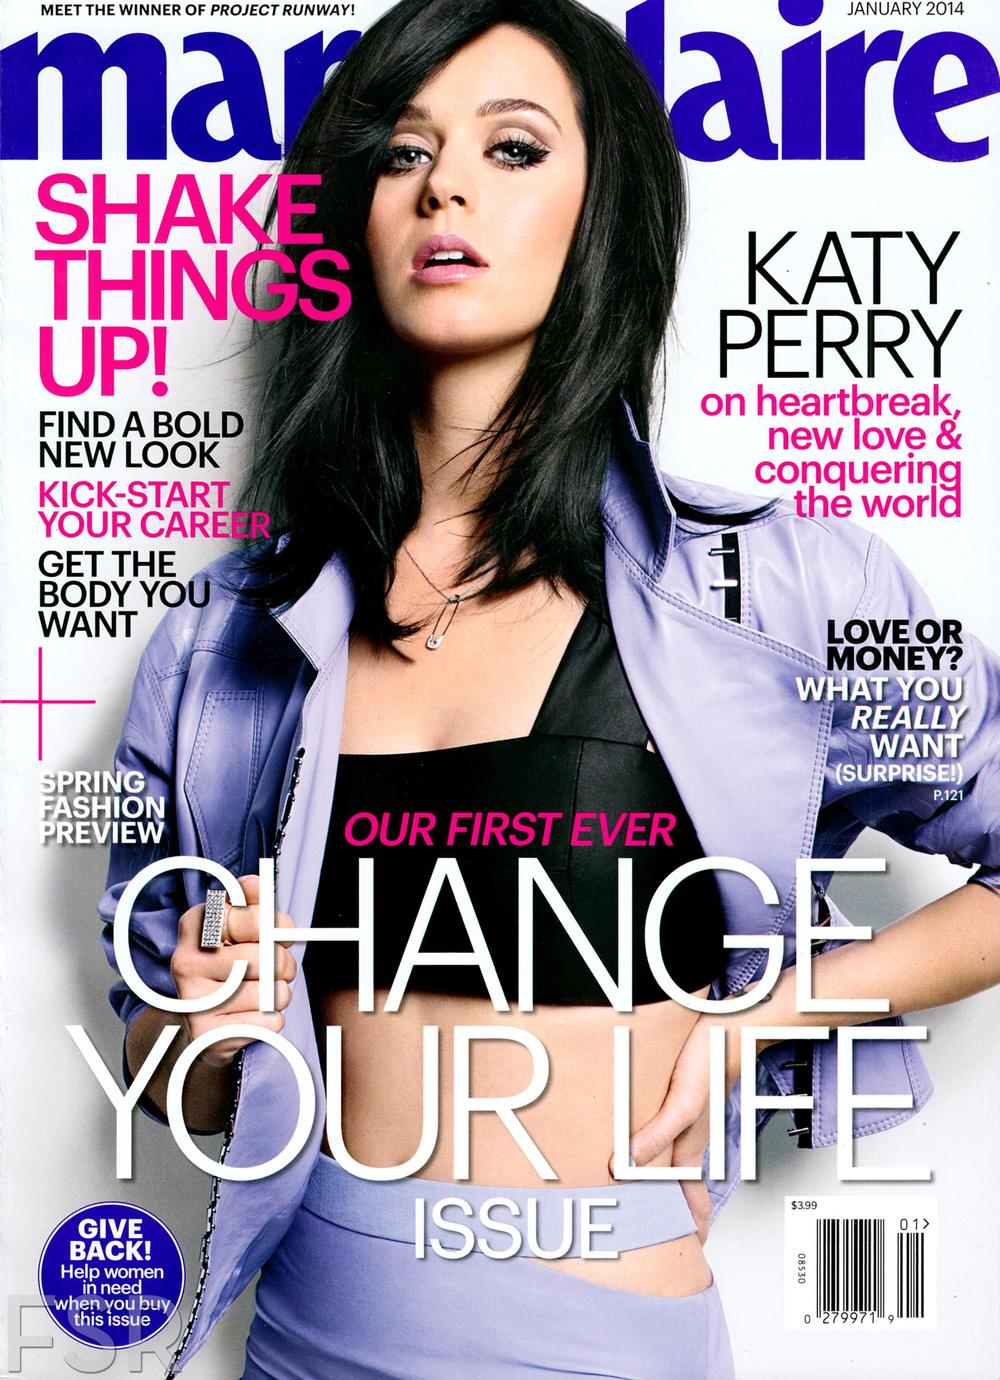 fashion_scans_remastered-katy_perry-marie_claire_usa-january_2014-scanned_by_vampirehorde-hq-1.jpg